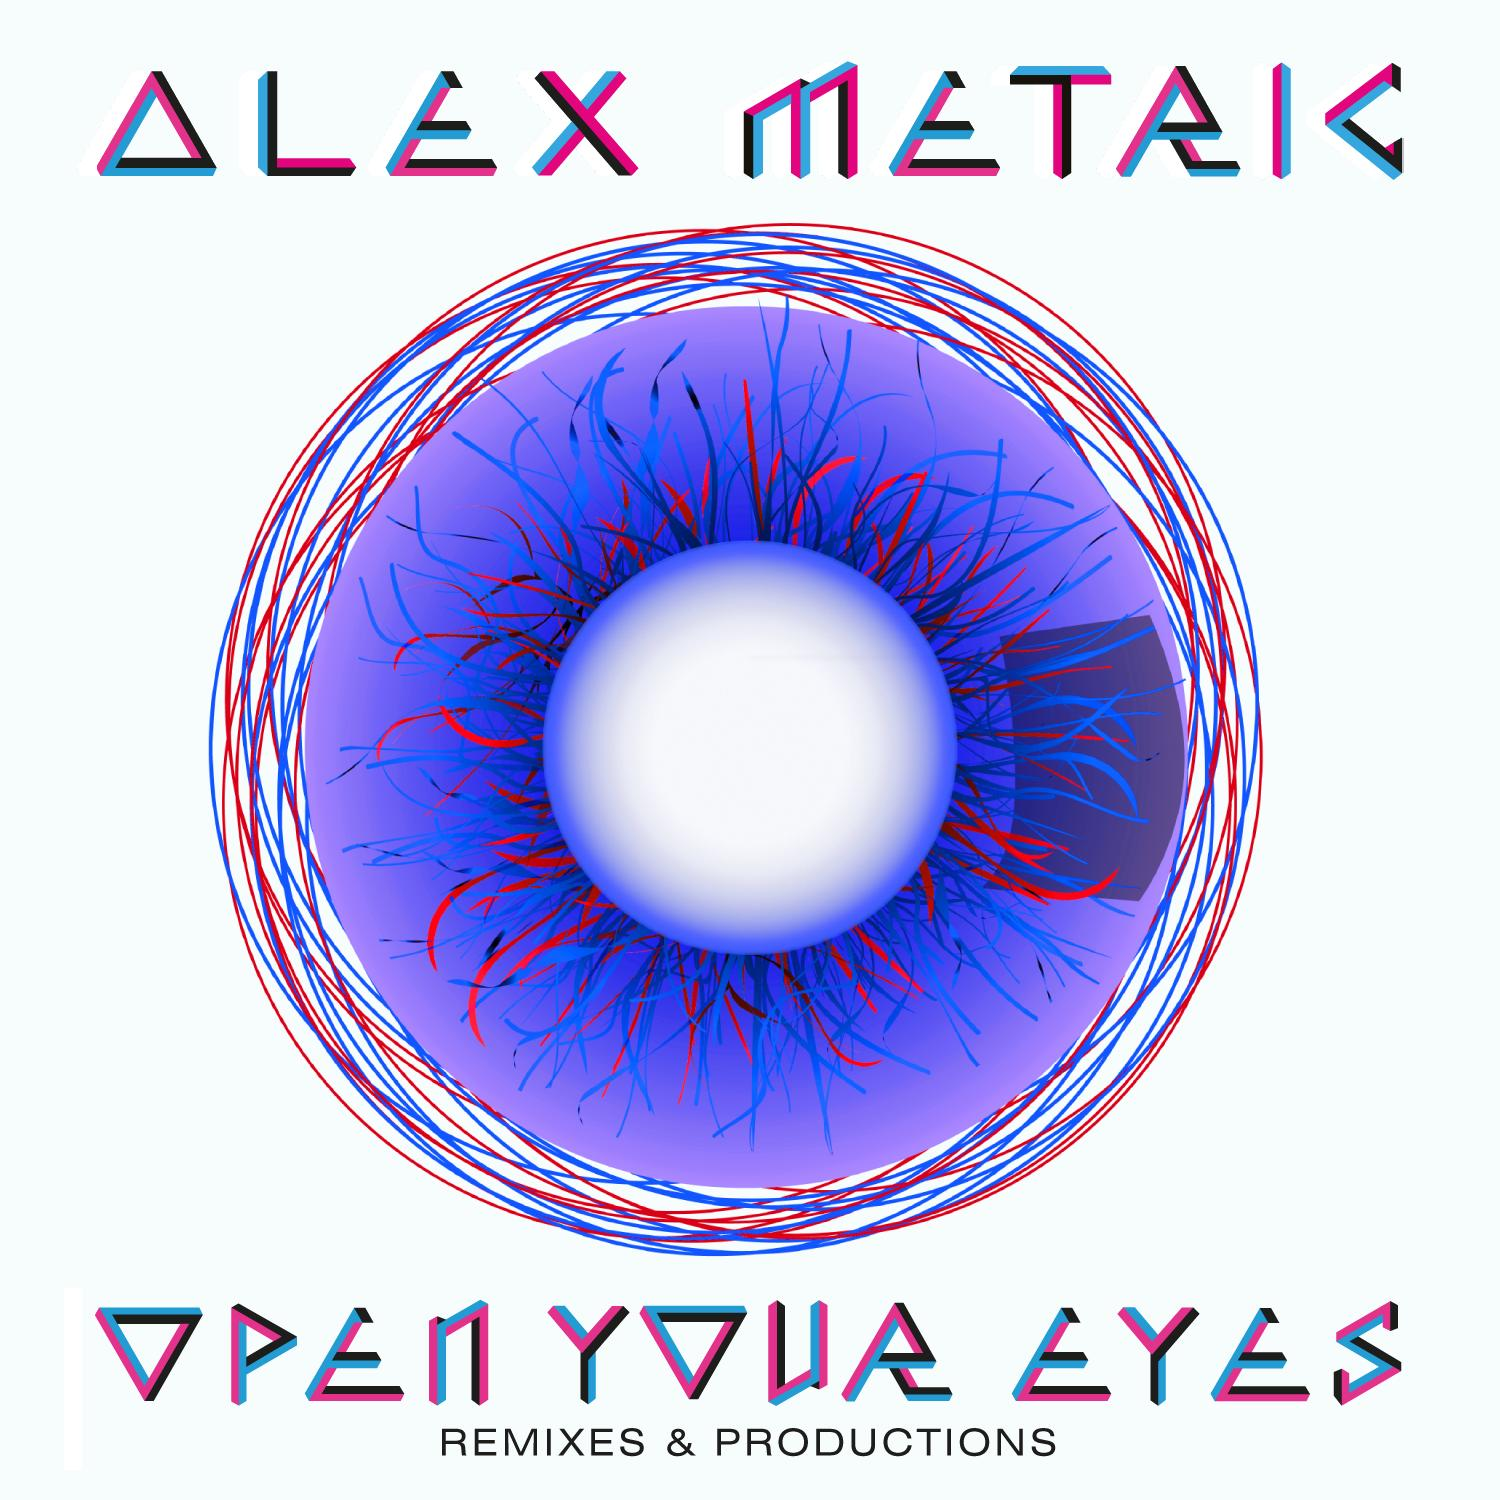 open-your-eyes-album-artwork